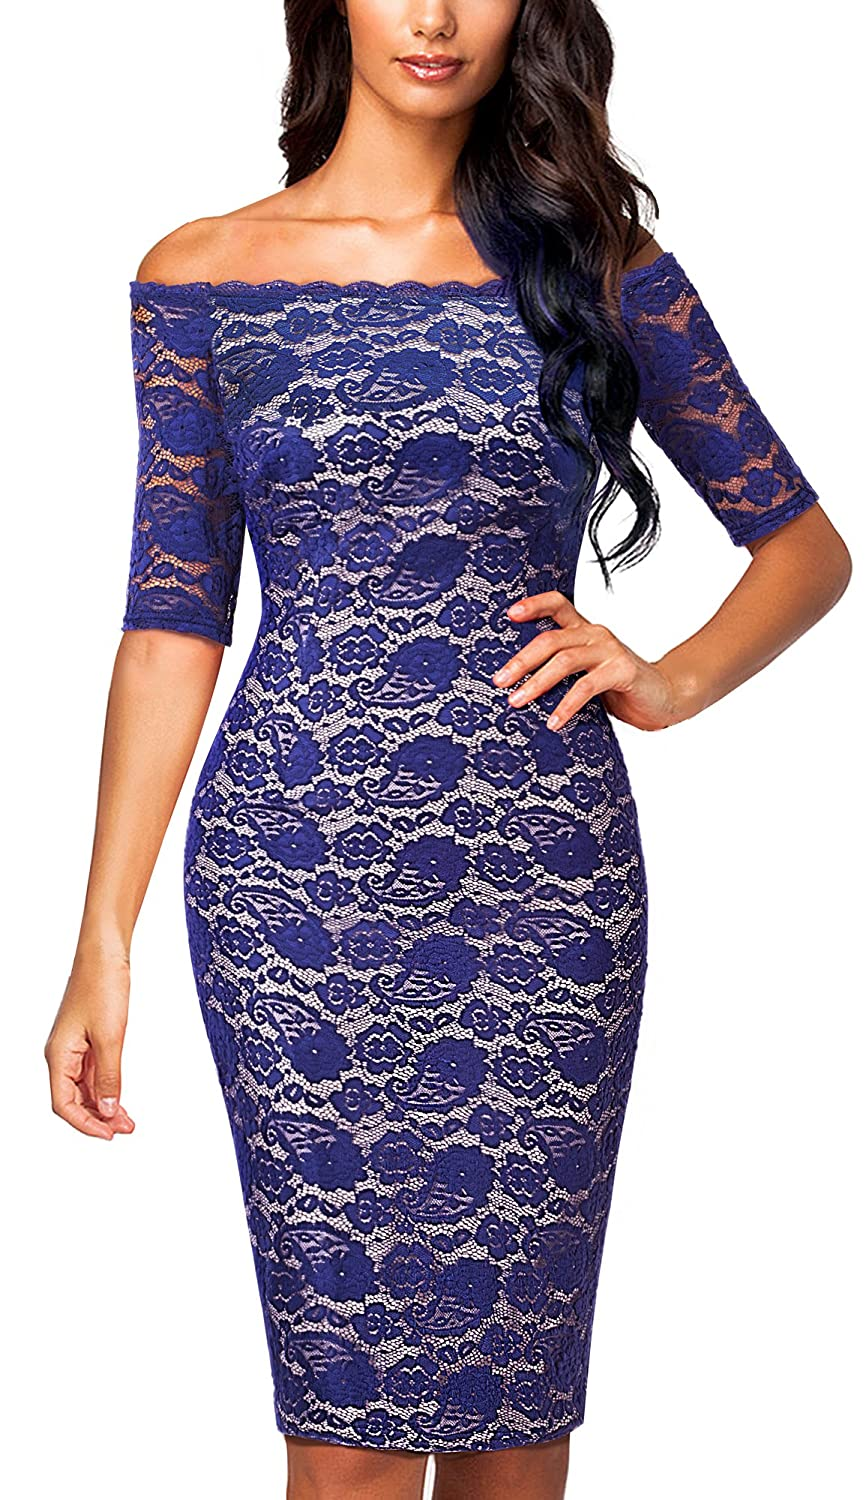 80%OFF HOMEYEE Elegante media manga de encaje bordado Bodycon ...